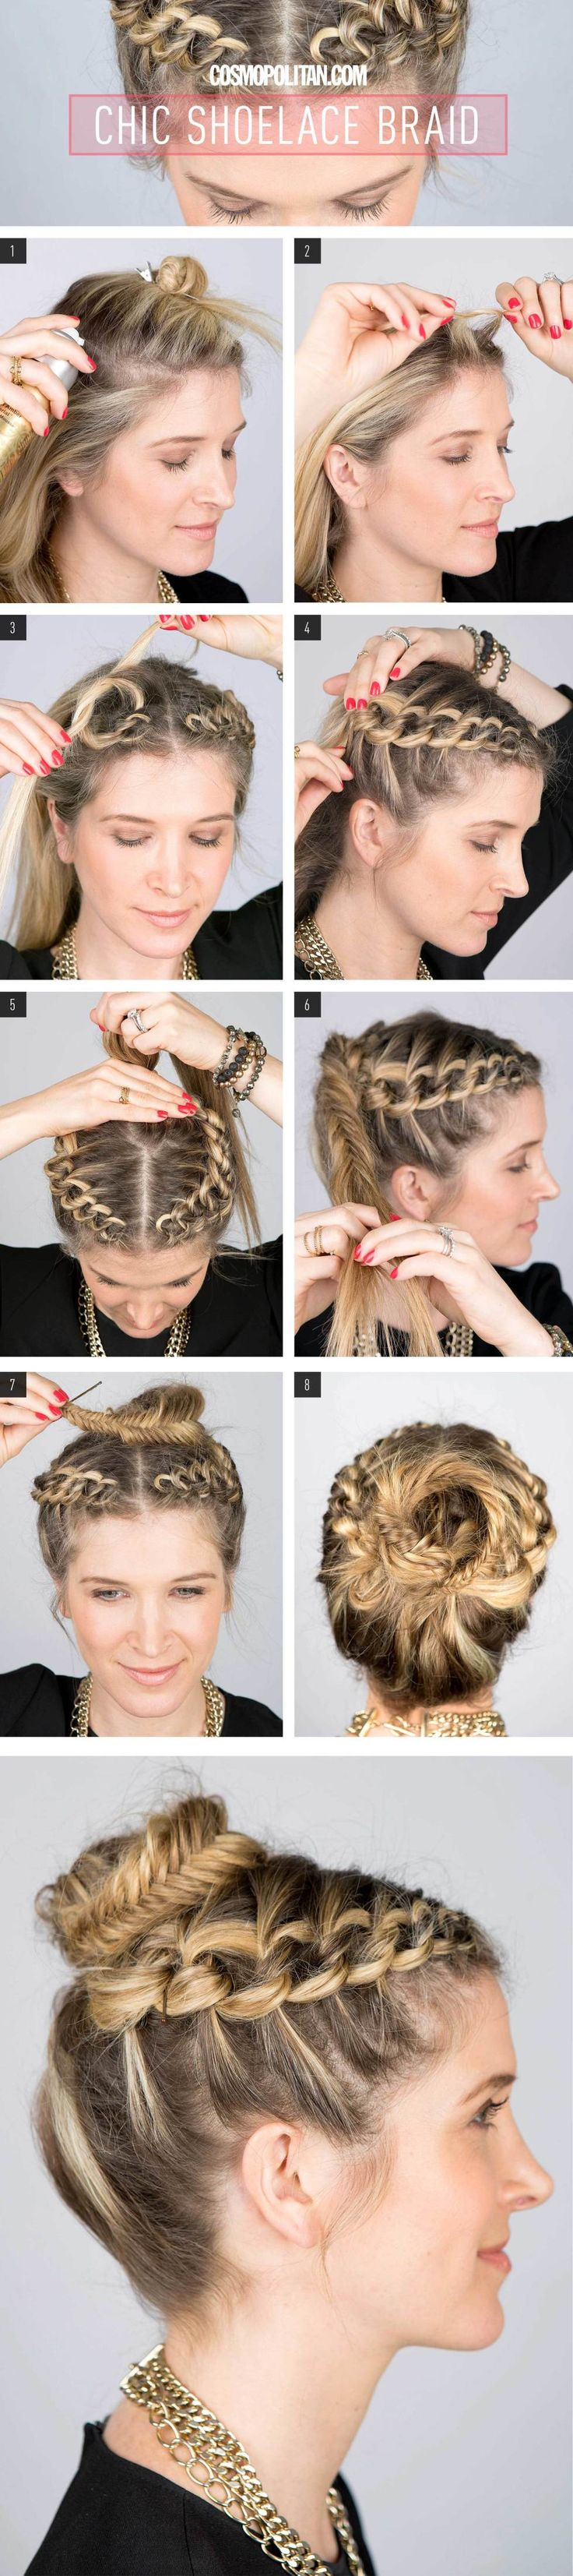 best 25+ shoelace braid ideas on pinterest | knotted braid, part